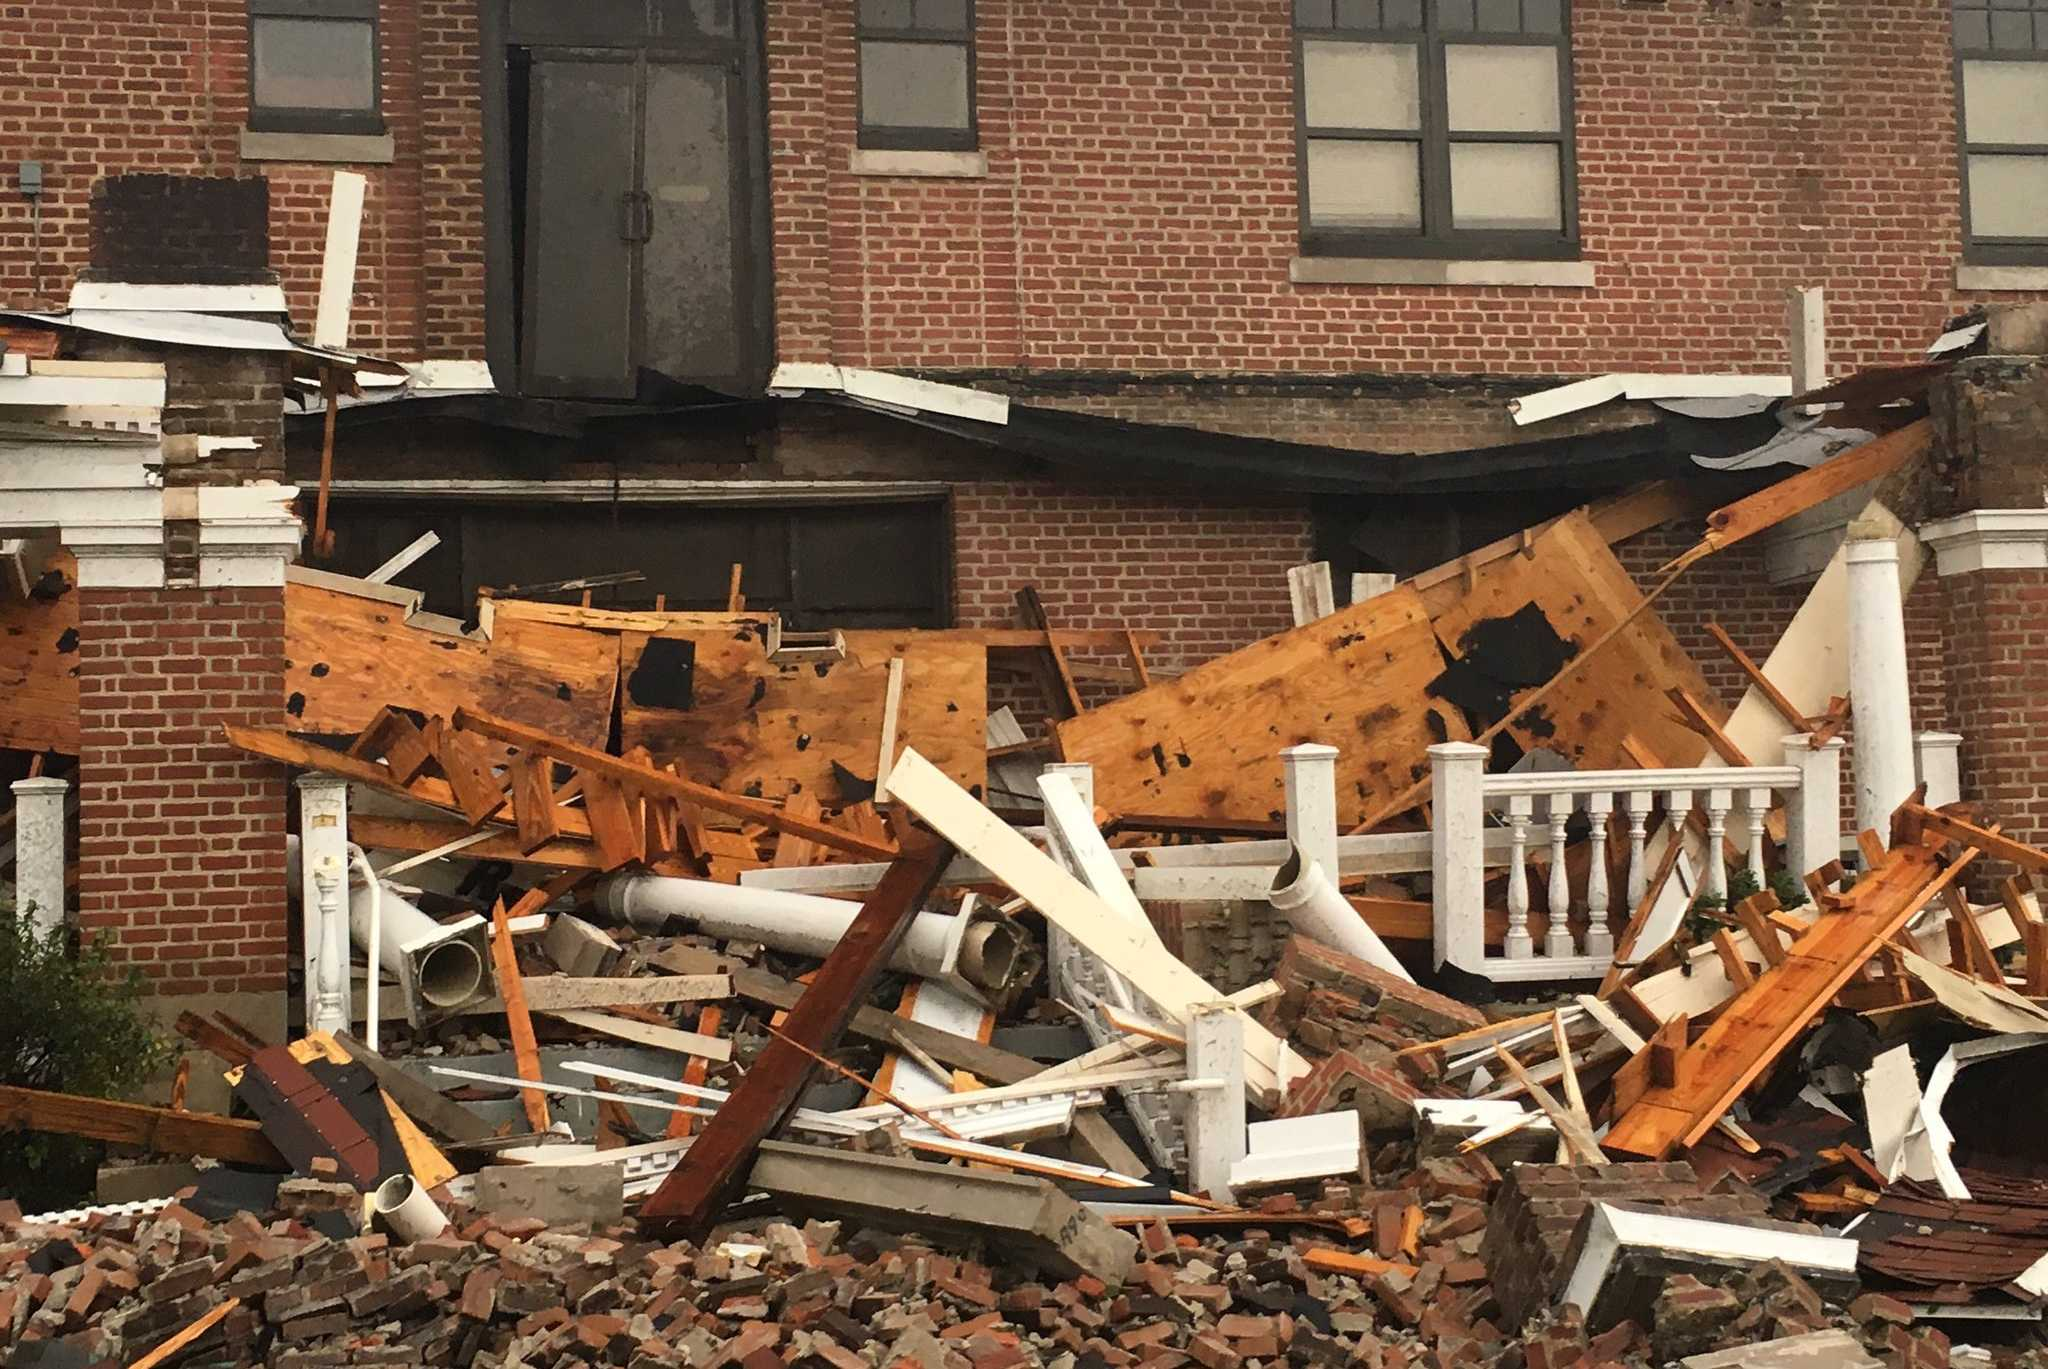 Buildings are damaged on the campus on William Carey University after a tornado ripped through Hattiesburg, Miss., Jan. 21, 2017.